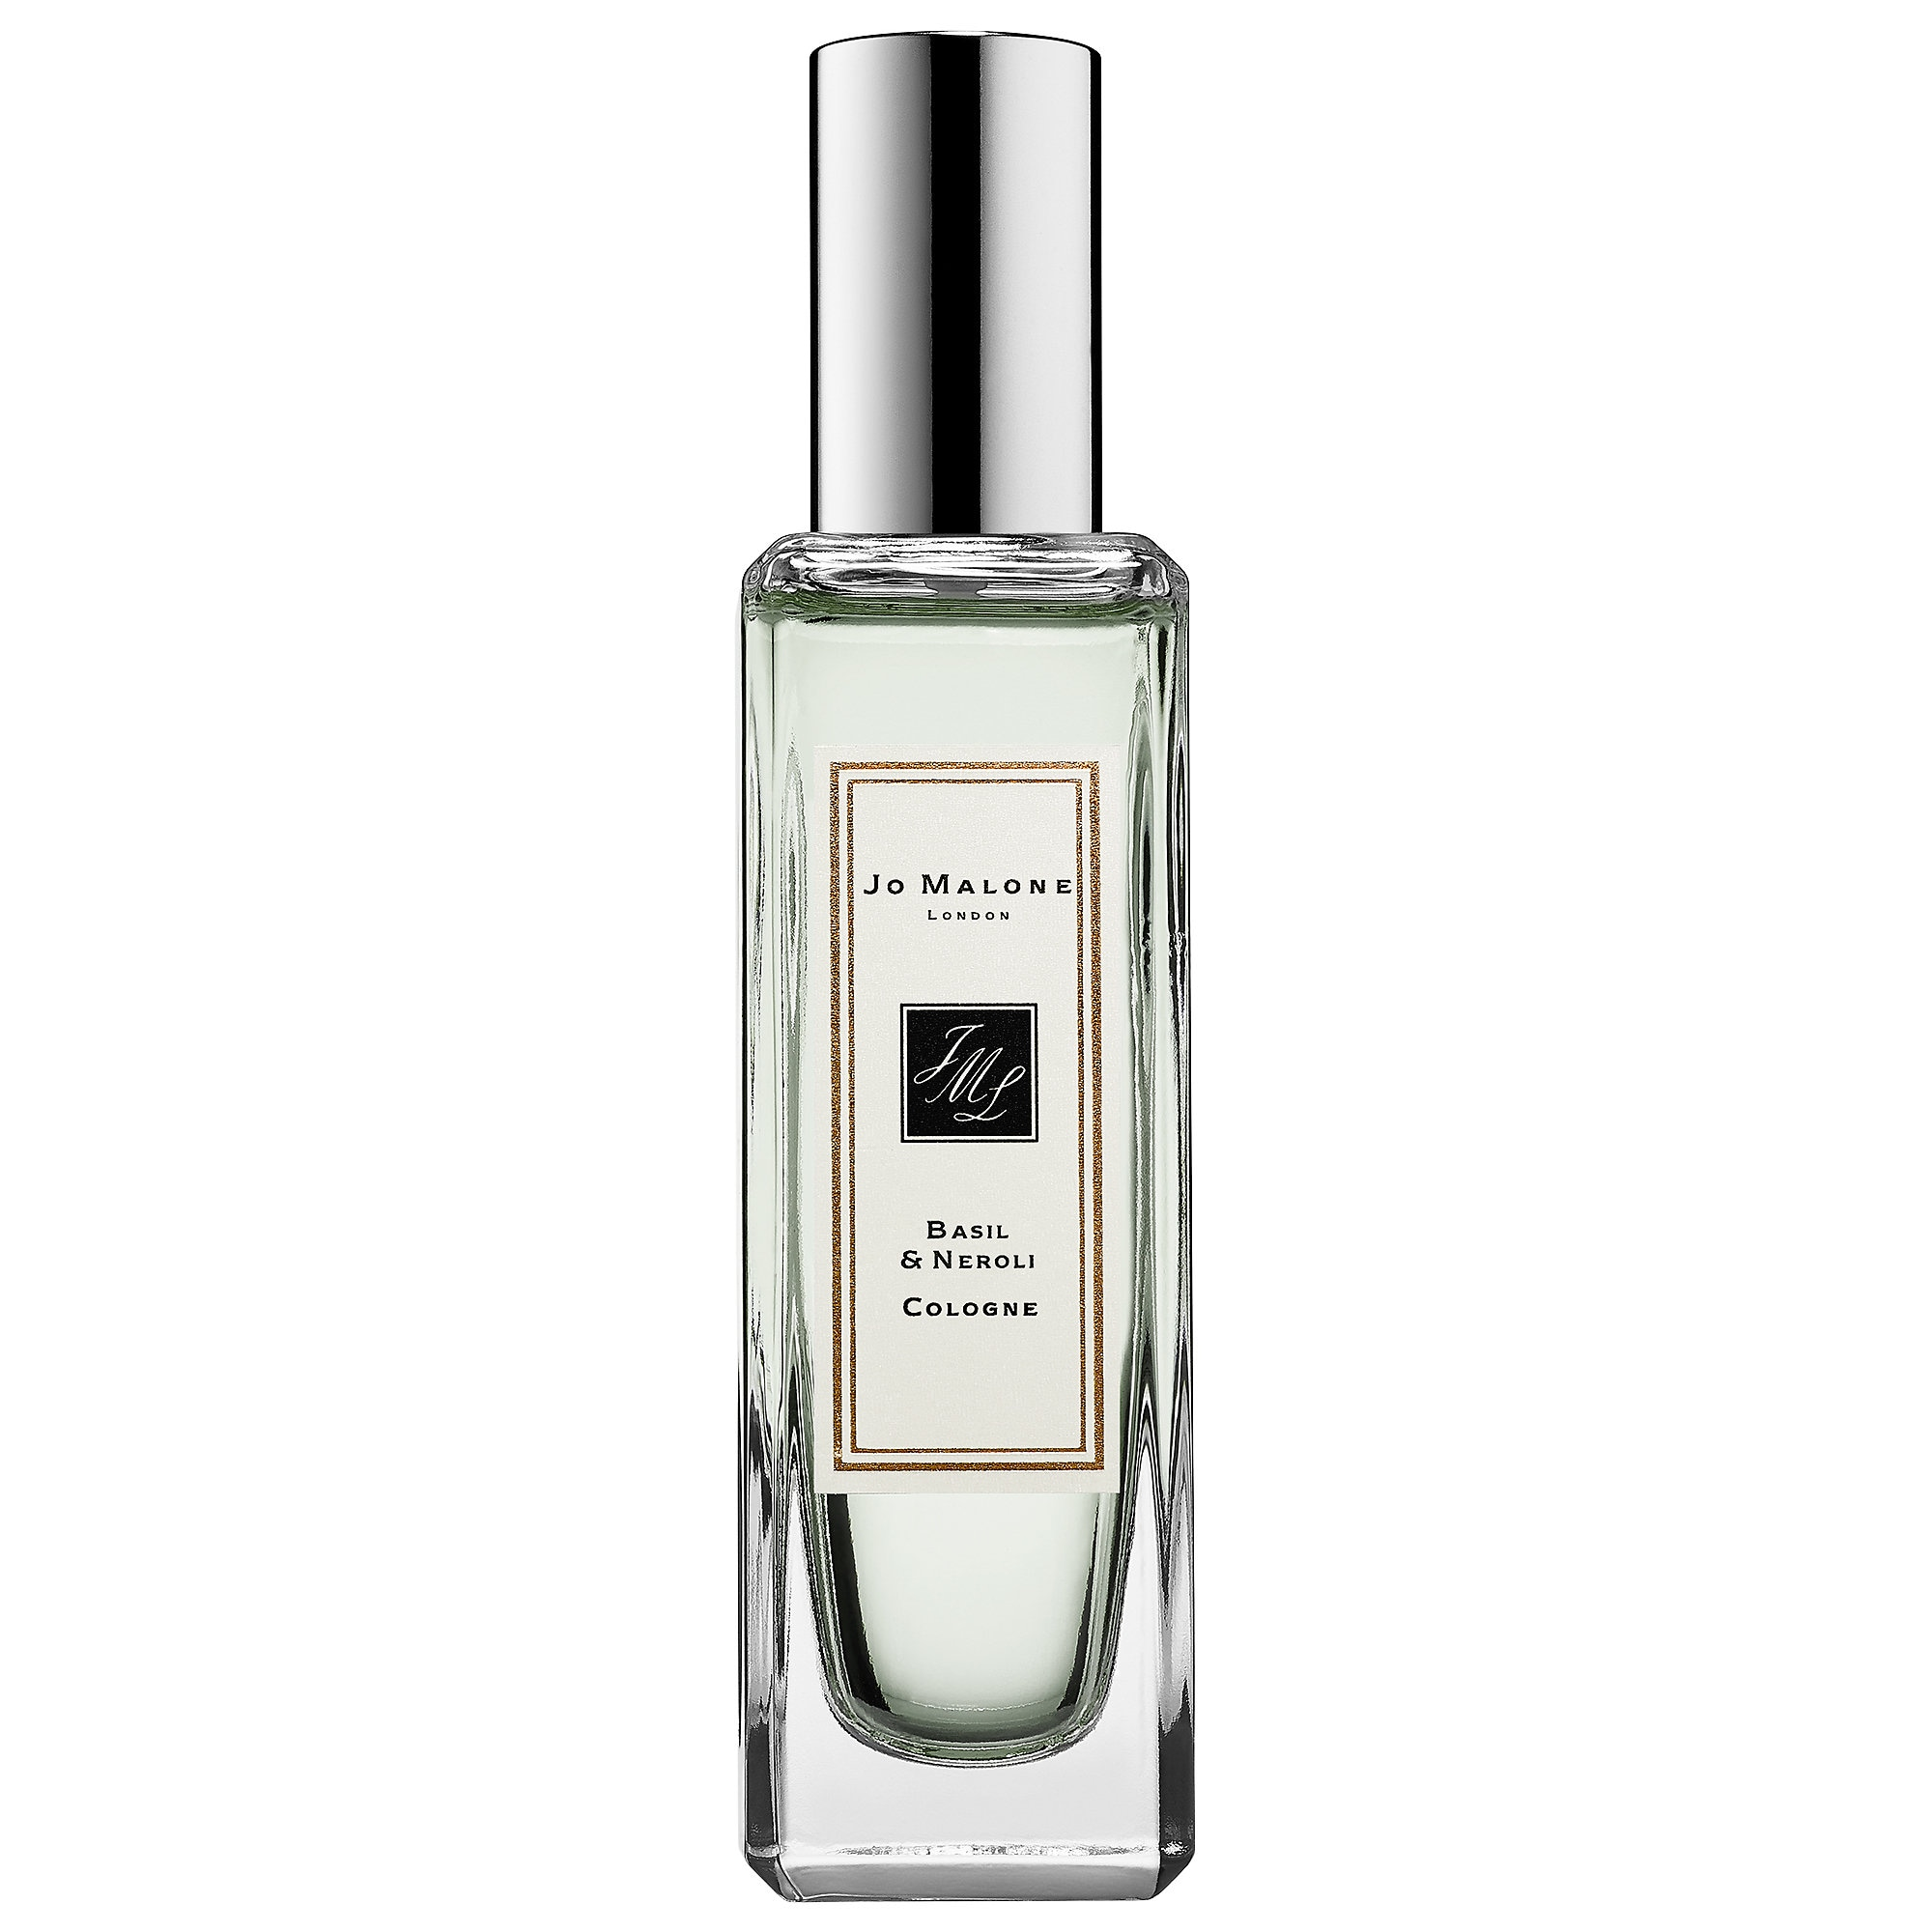 Jo Malone London - Basil & Neroli Cologne